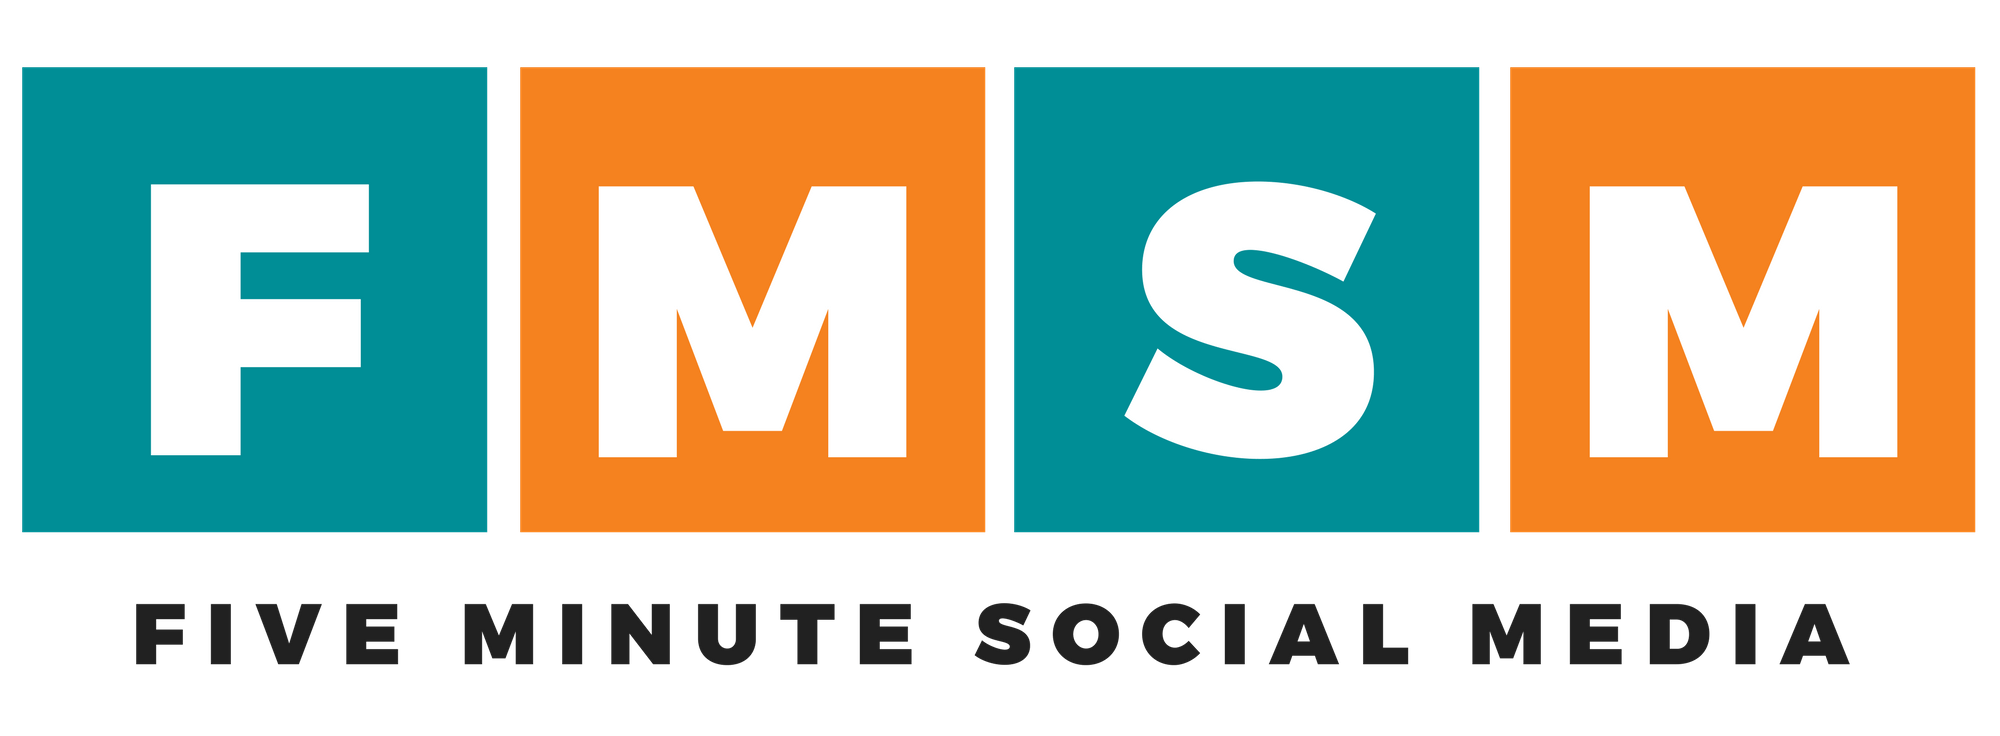 Five Minute Social Media Logo - Horizontal, Black